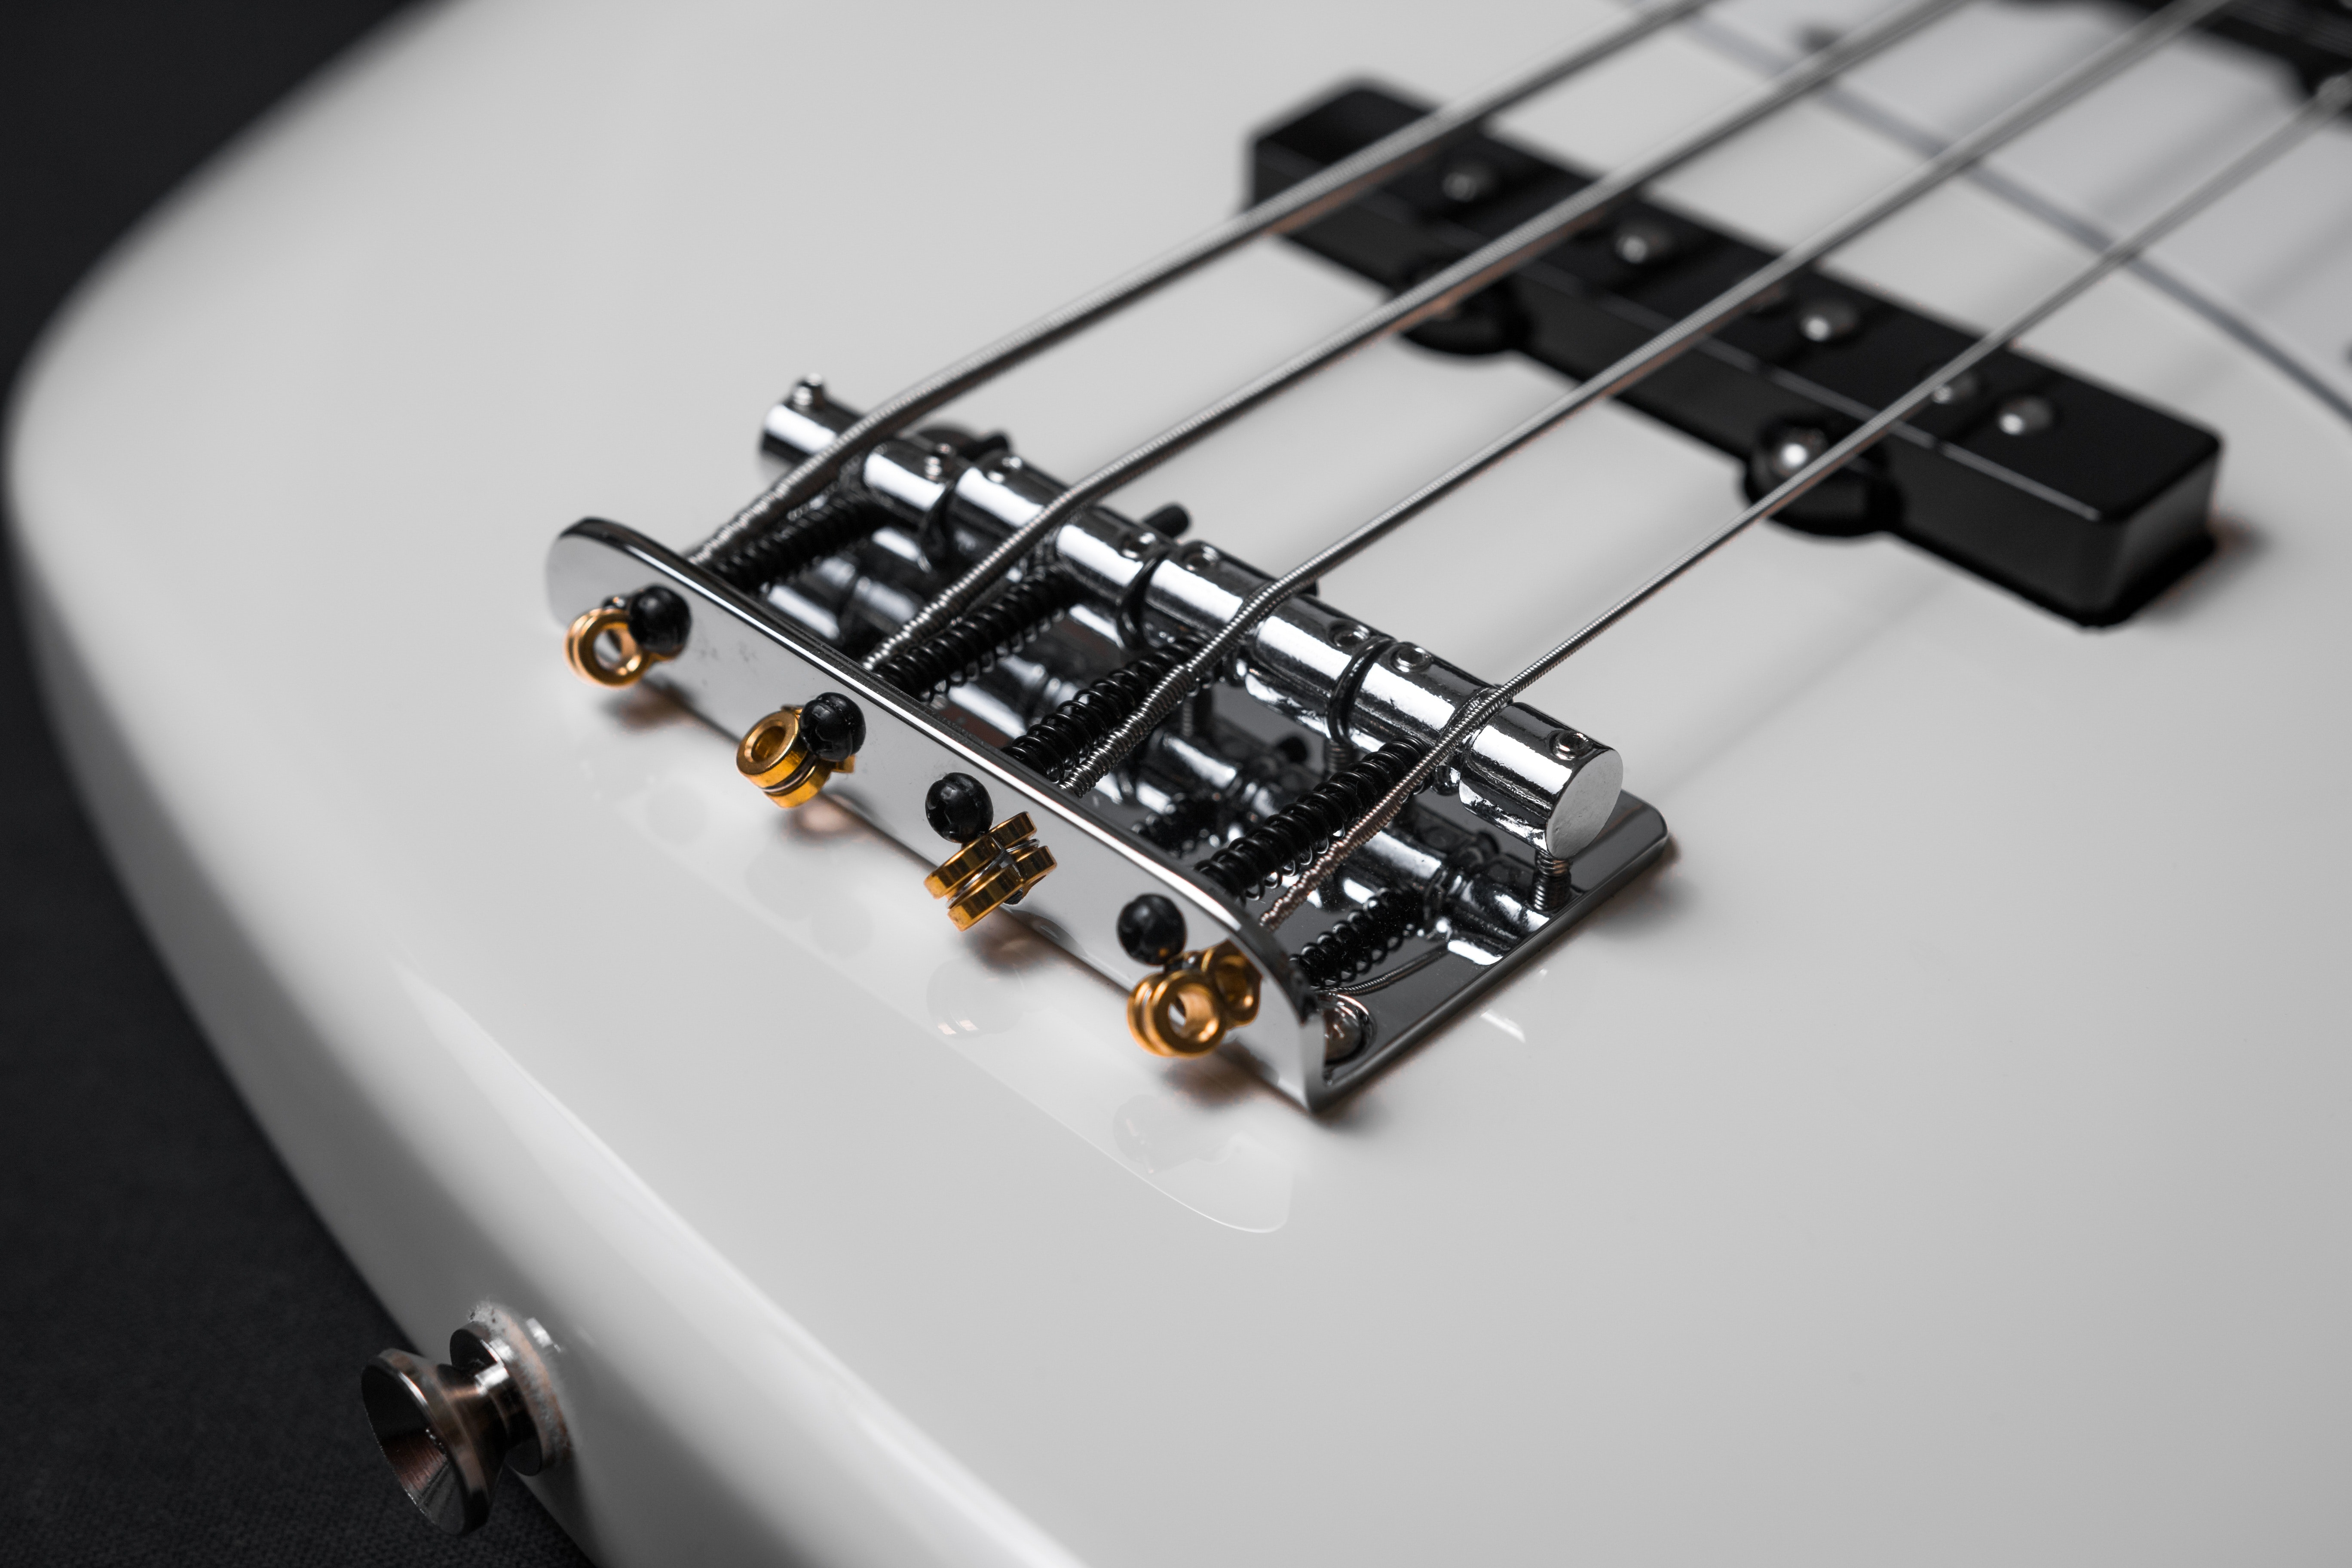 Famous Electric Guitar Diagram Ideas Ceiling Designs For Bathroom Hsh Wiring Mod To Hh Sss Alloutputcom Fantastic Ibanez Srx Bass Contemporary Pexels Photo 164712